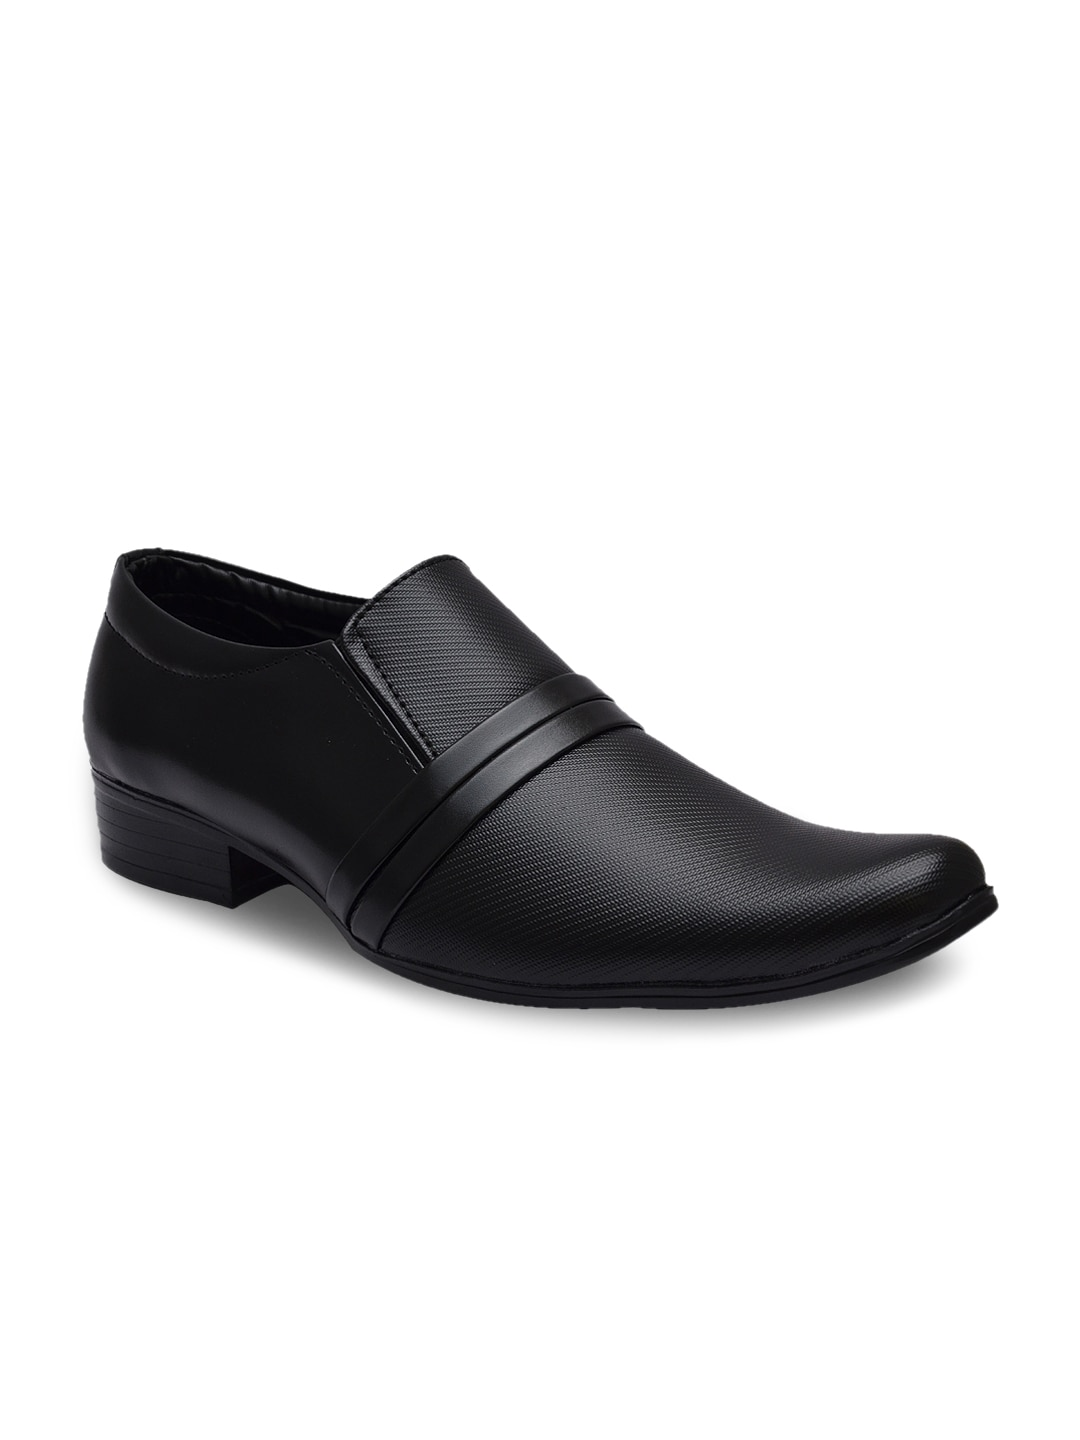 Formal Shoes For Men - Buy Men s Formal Shoes Online